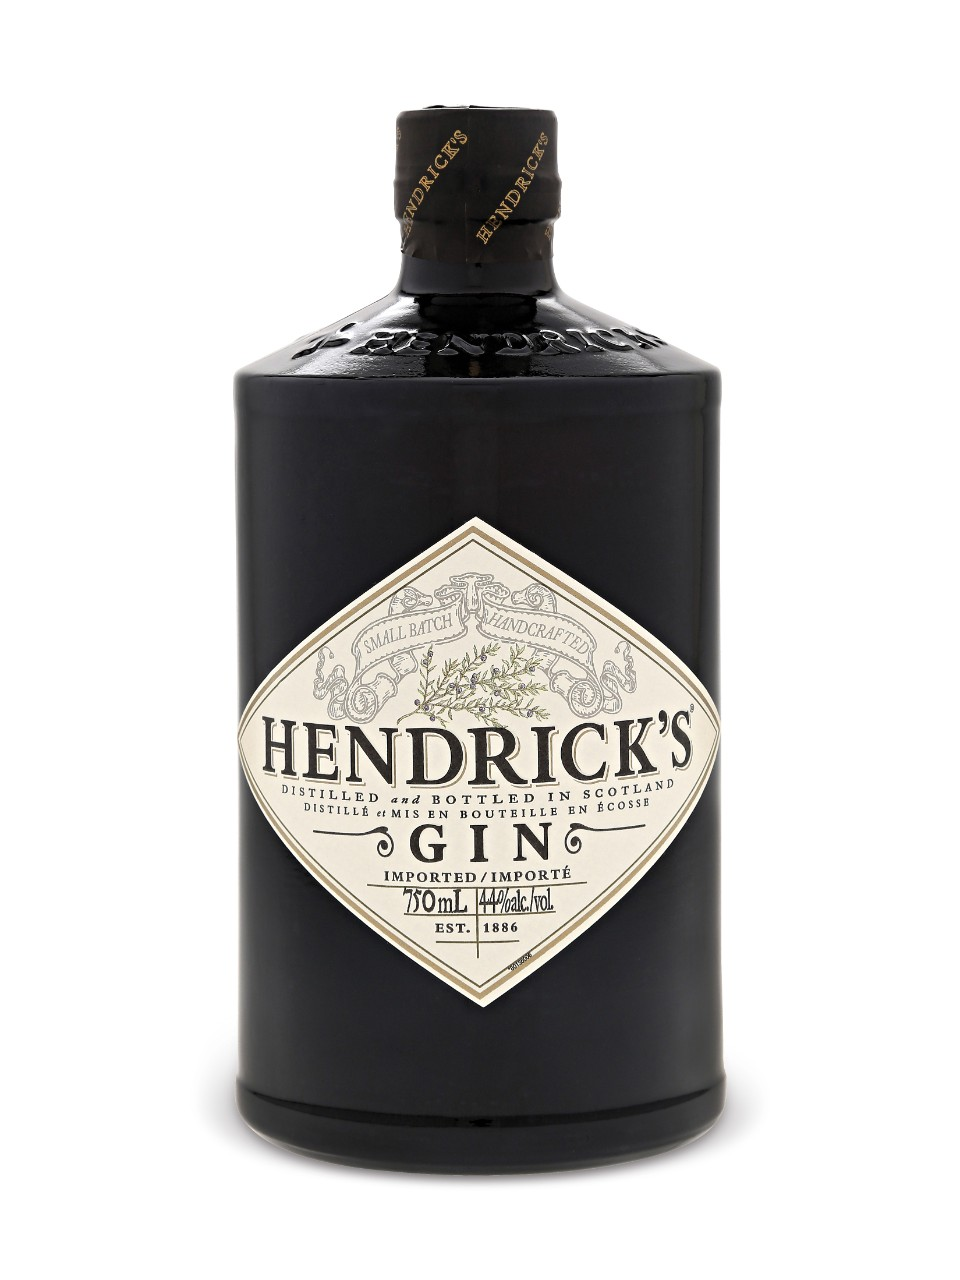 Hendricksbottle.jpeg